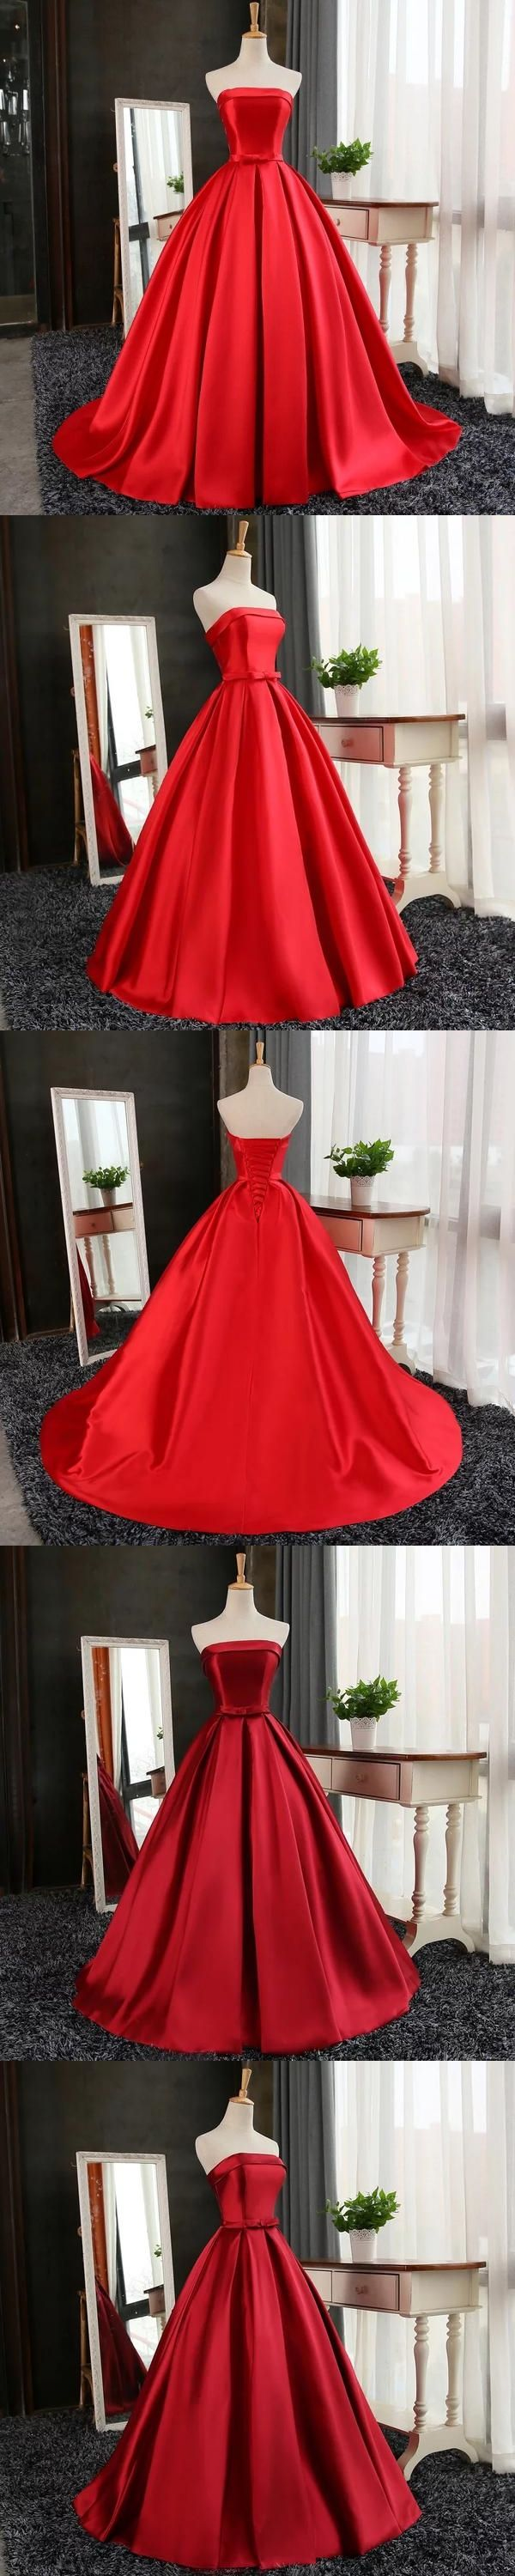 Cheap red prom dress ball gown sweepbrush train strapless prom